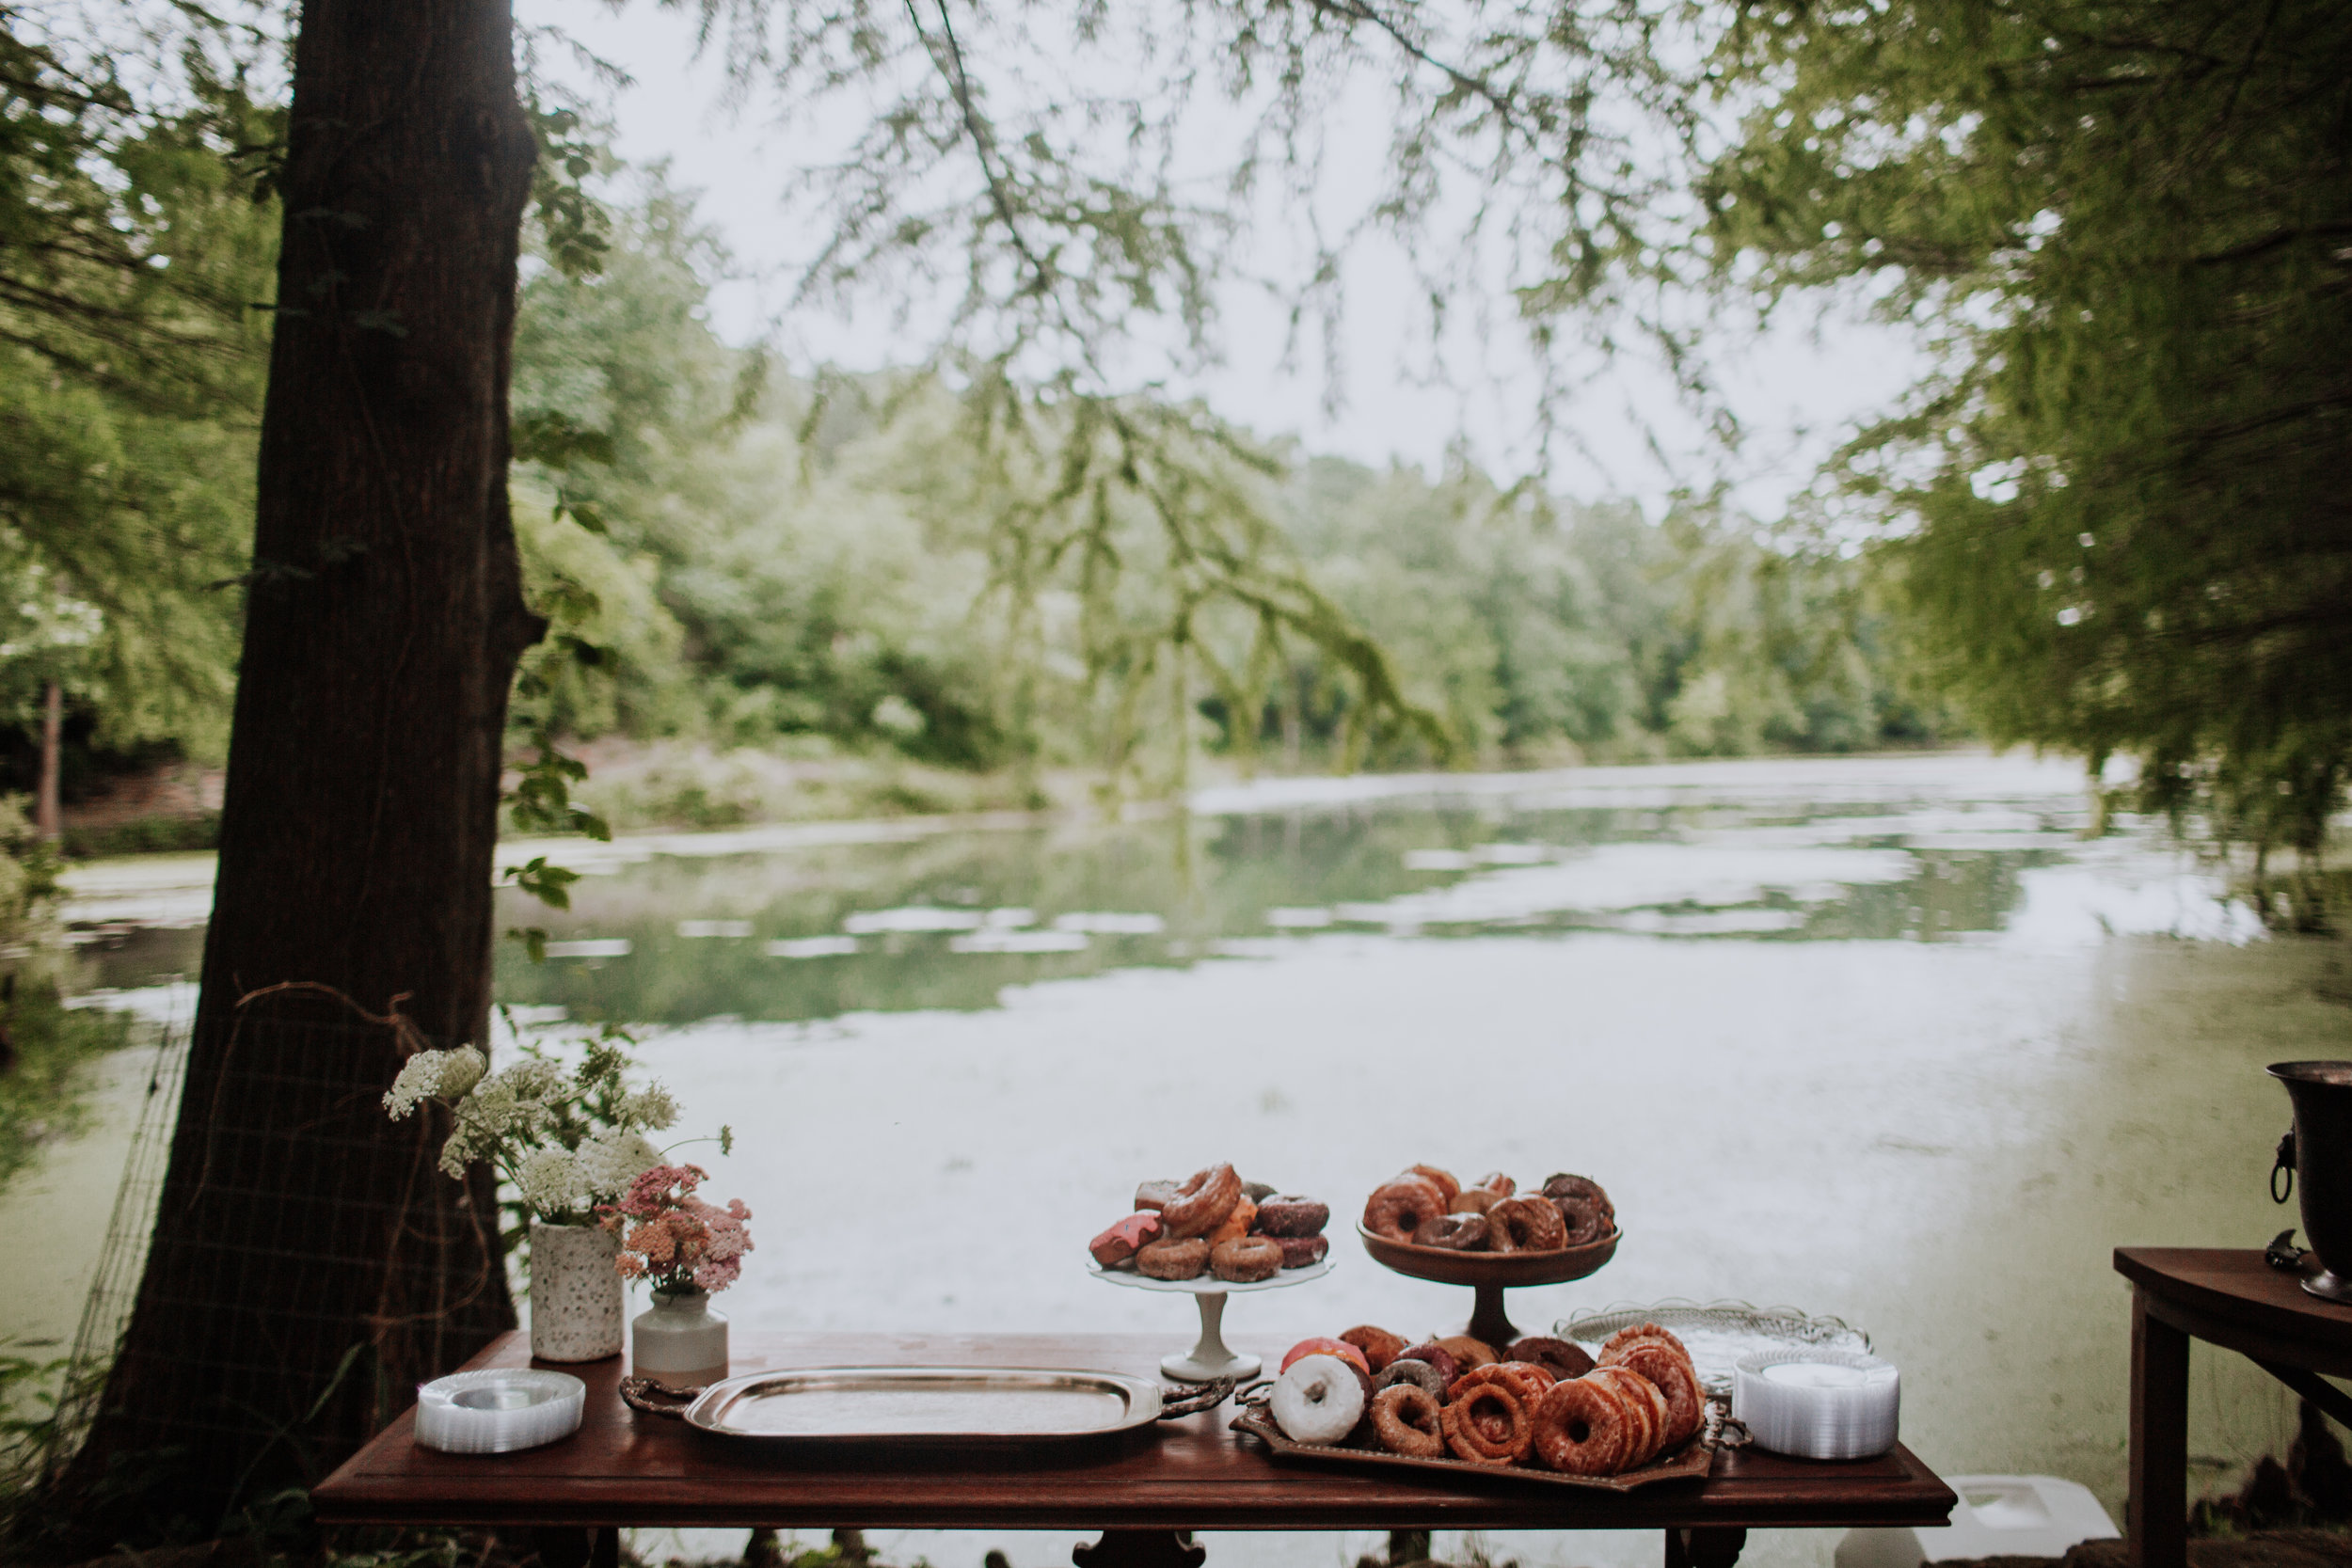 dessert table. dessert tablescape. wedding dessert. elopement dessert. alternative dessert. outdoor elopement. creative entrepreneurs brunch. midwest brunch event. midwest entrepreneur event. midwest entrepreneur educational event.